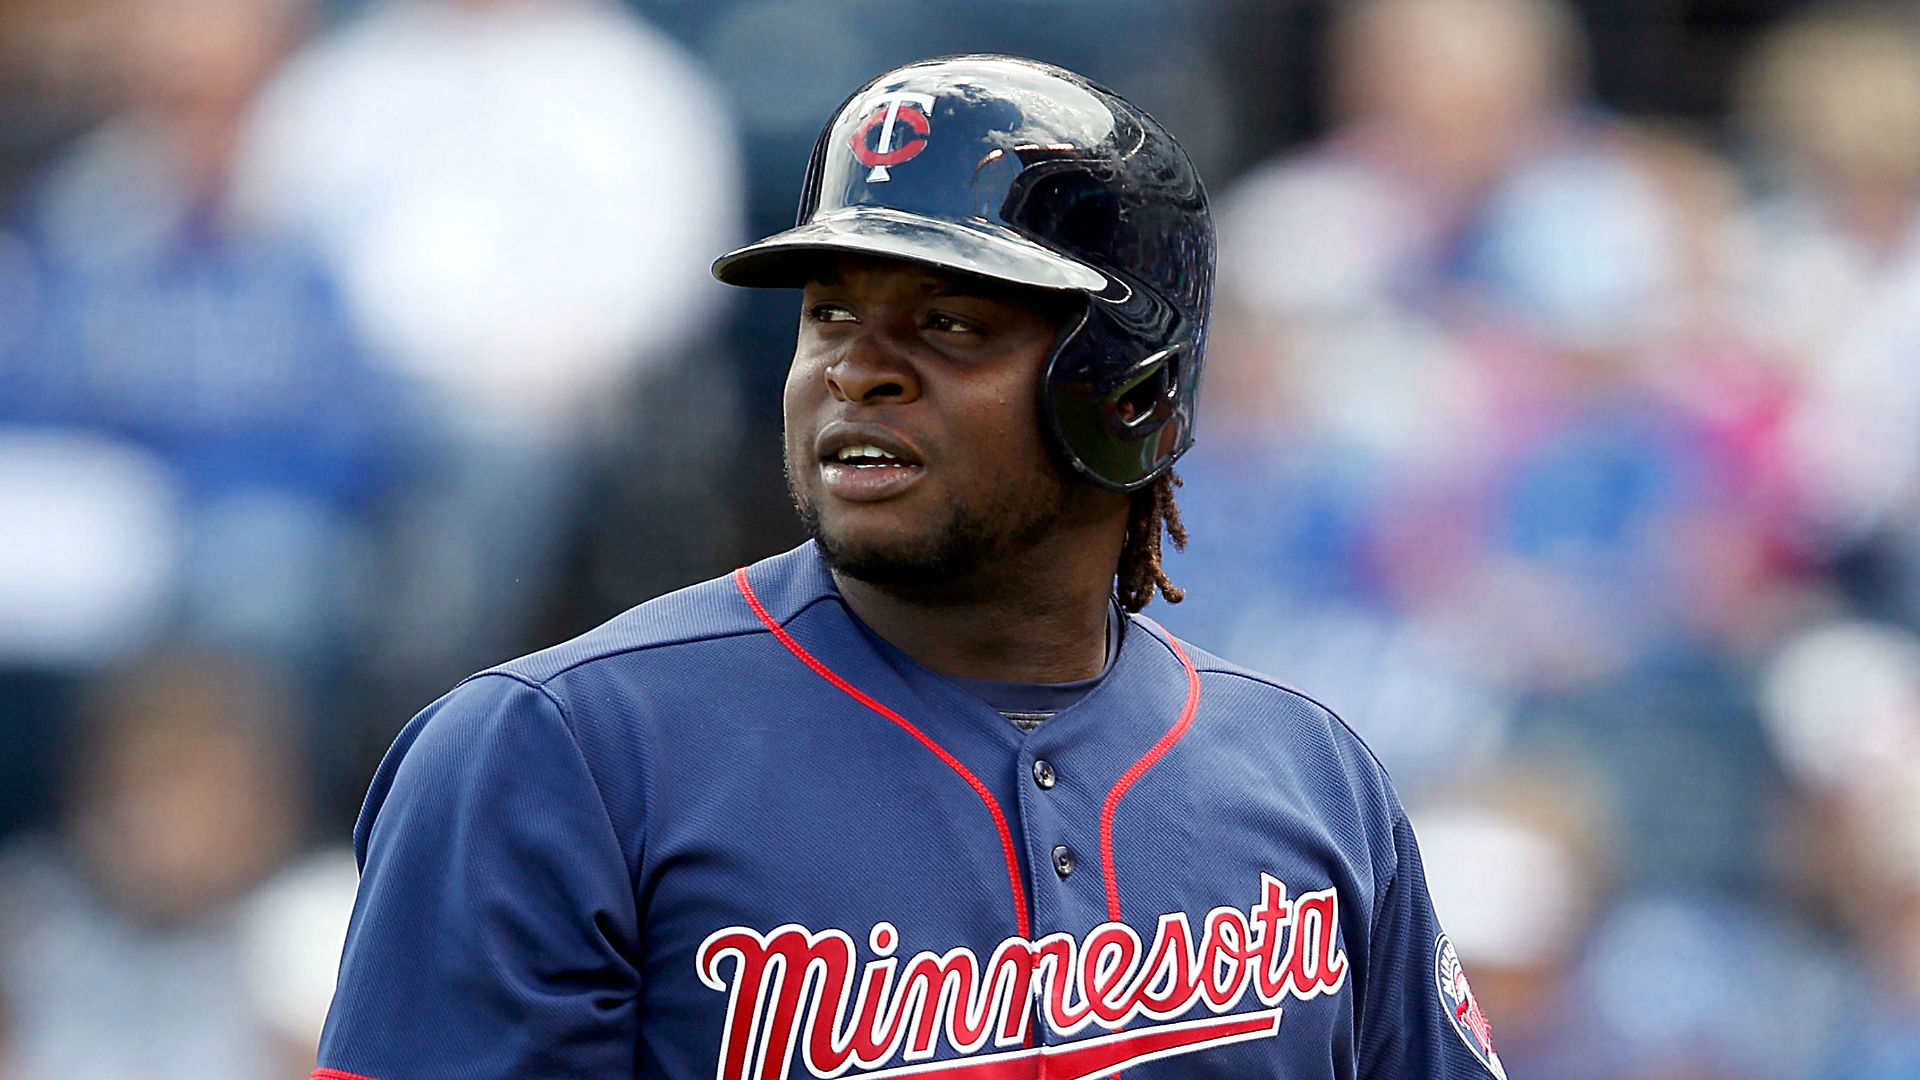 MLB to speak with Miguel Sano accuser, report says